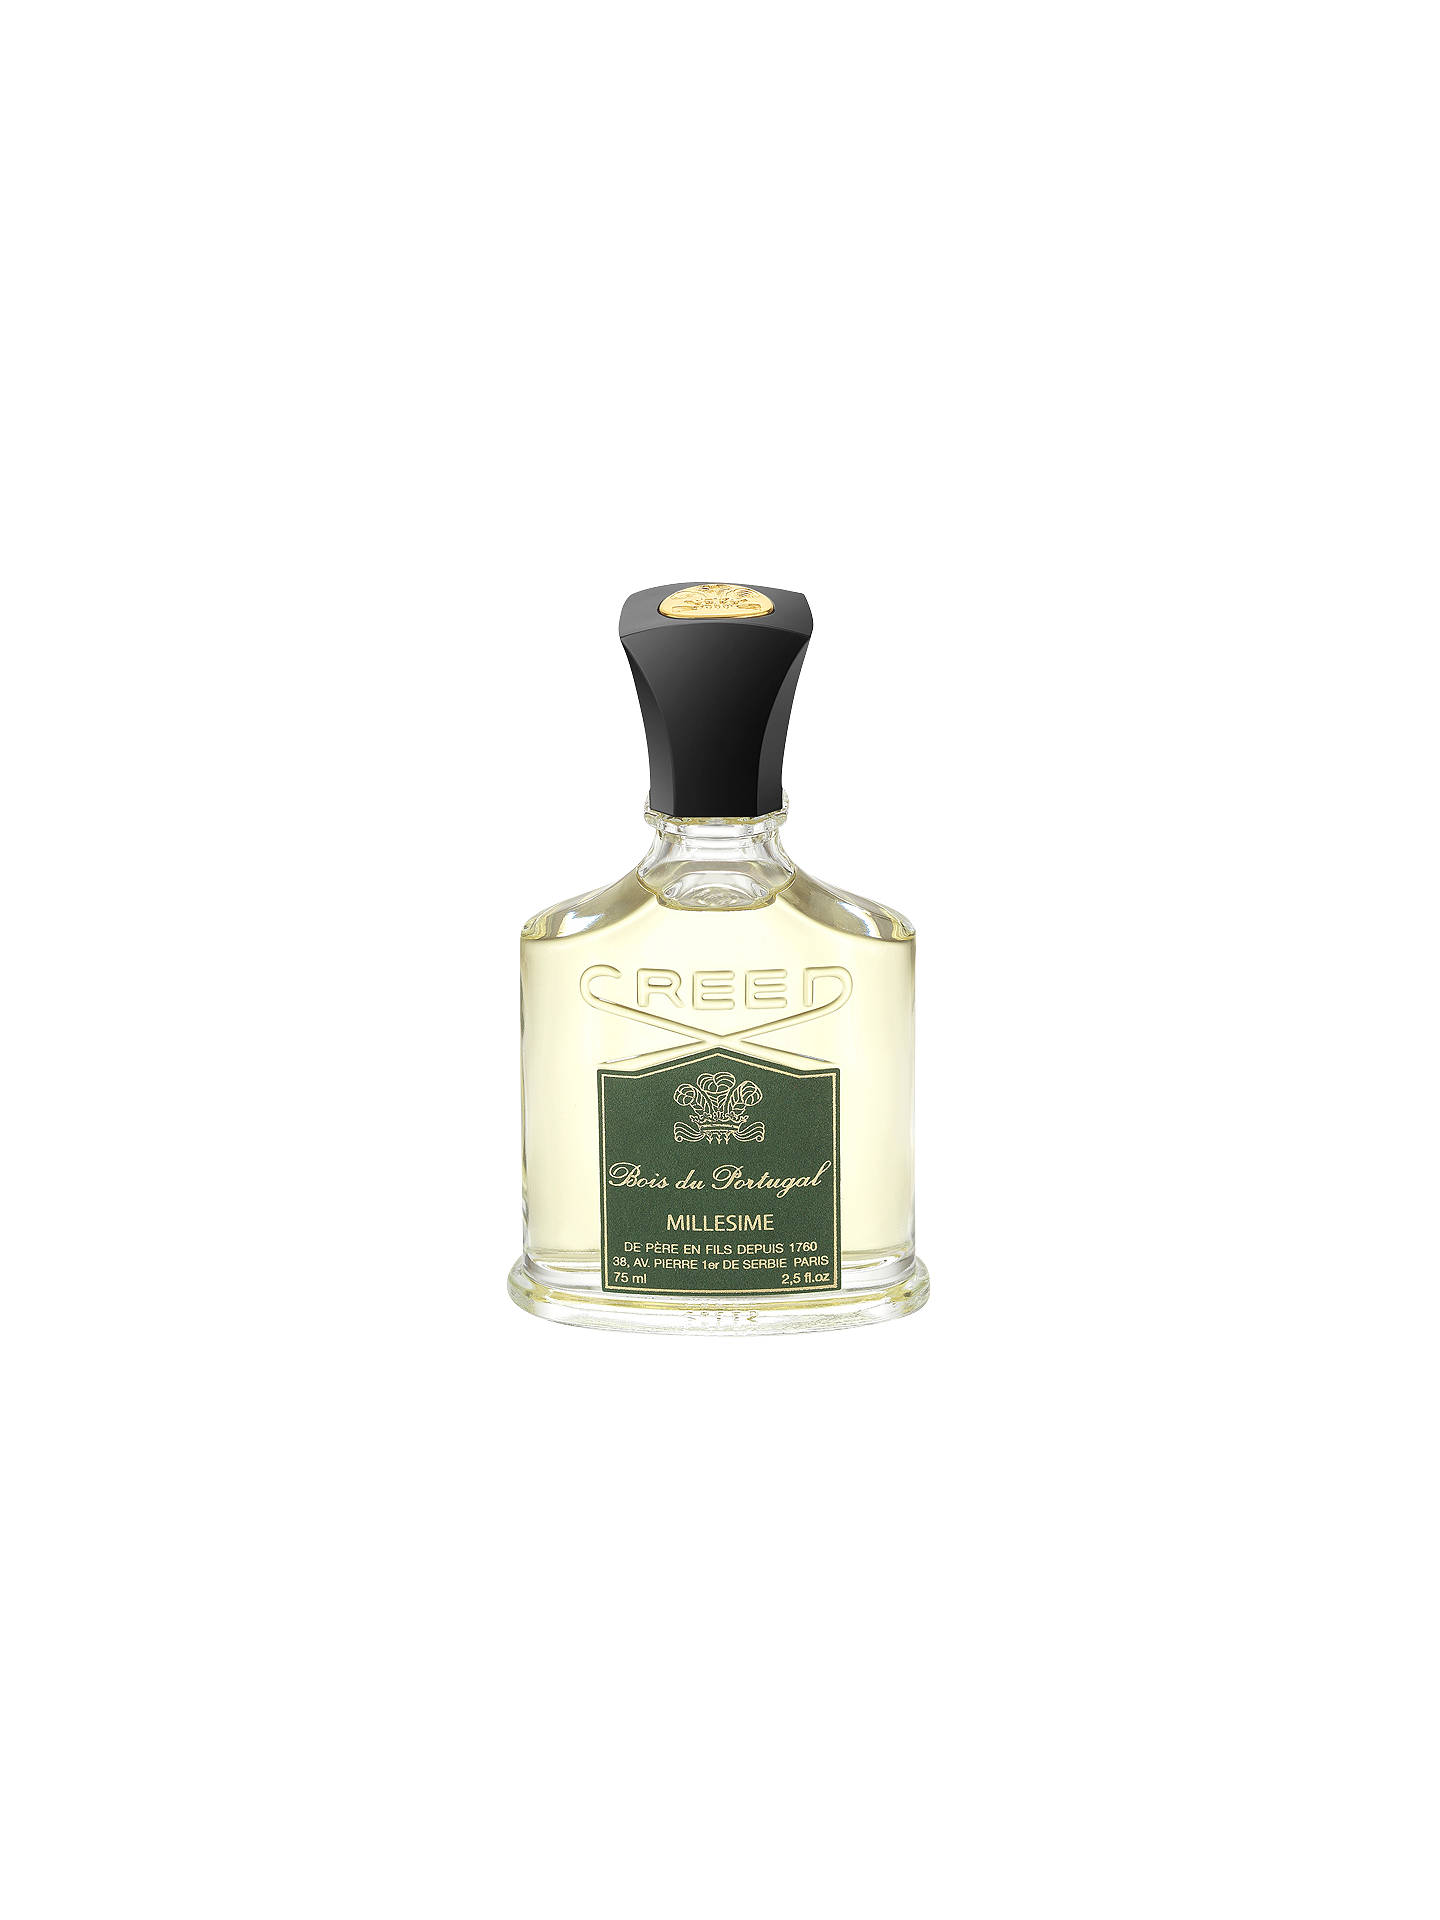 creed bois du portugal eau de parfum 75ml at john lewis. Black Bedroom Furniture Sets. Home Design Ideas